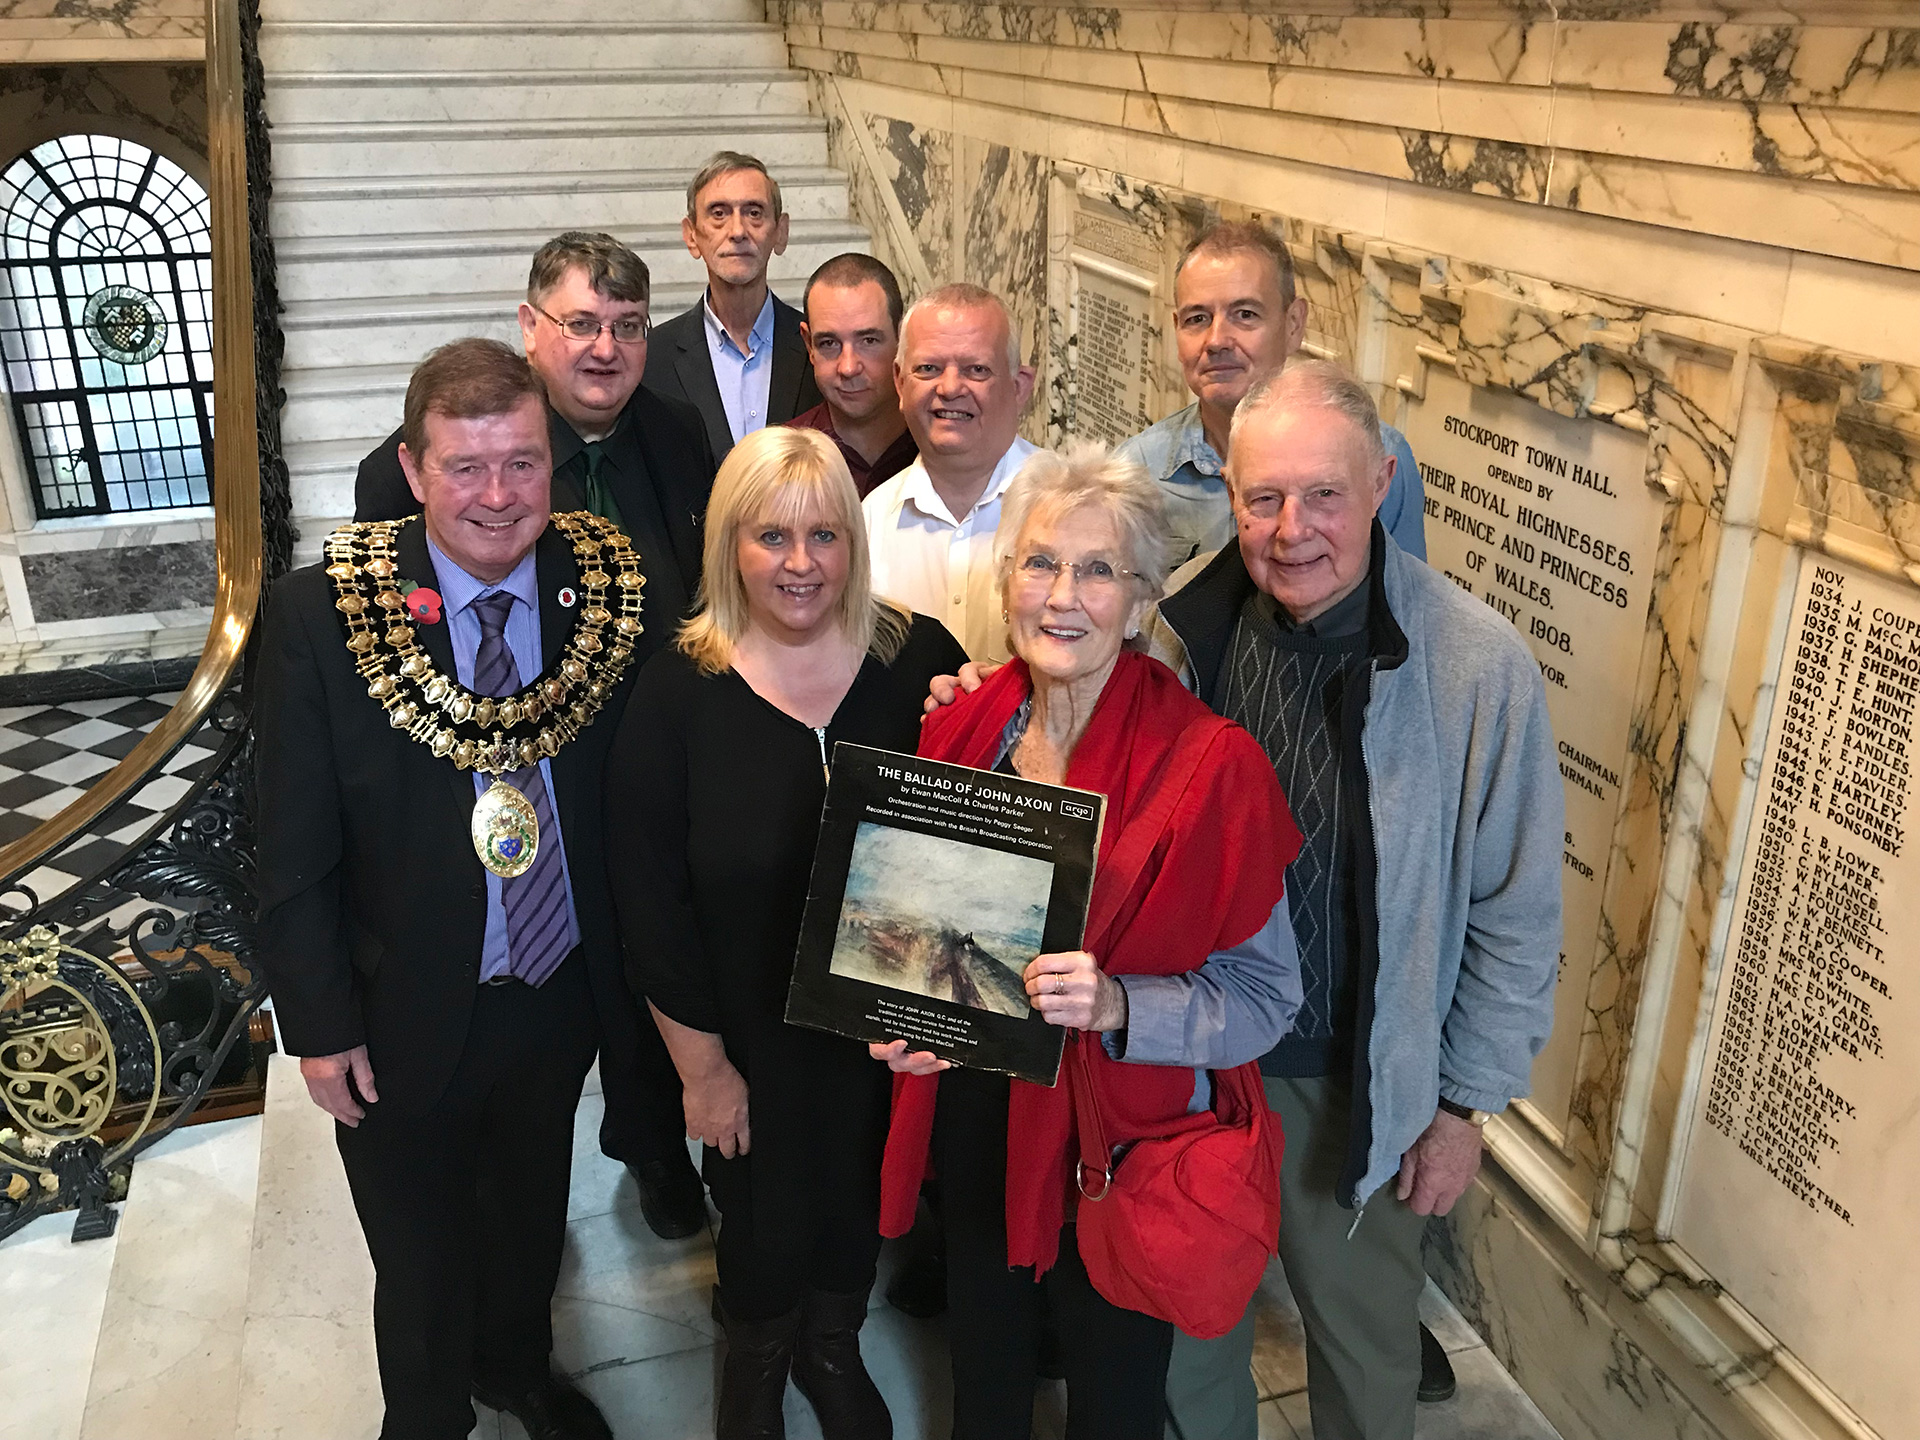 Civic reception with folk legend Peggy Seeger honours heroic train driver